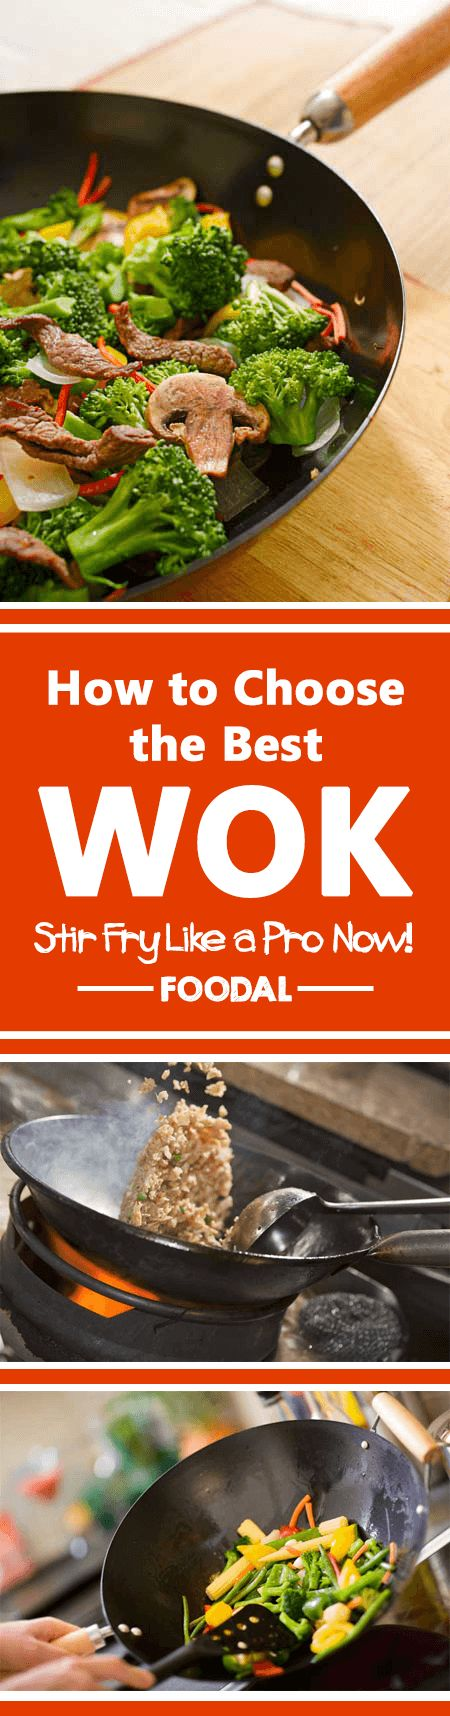 If you love the flavour and ease of stir fry's, using a wok will allow for the fast frying that is necessary. However, there are many models to choose from. Read Foodal's guide to help make that choice easier! http://foodal.com/kitchen/pots-pots-skillets-guides-reviews/guides/how-to-choose-the-best-wok/